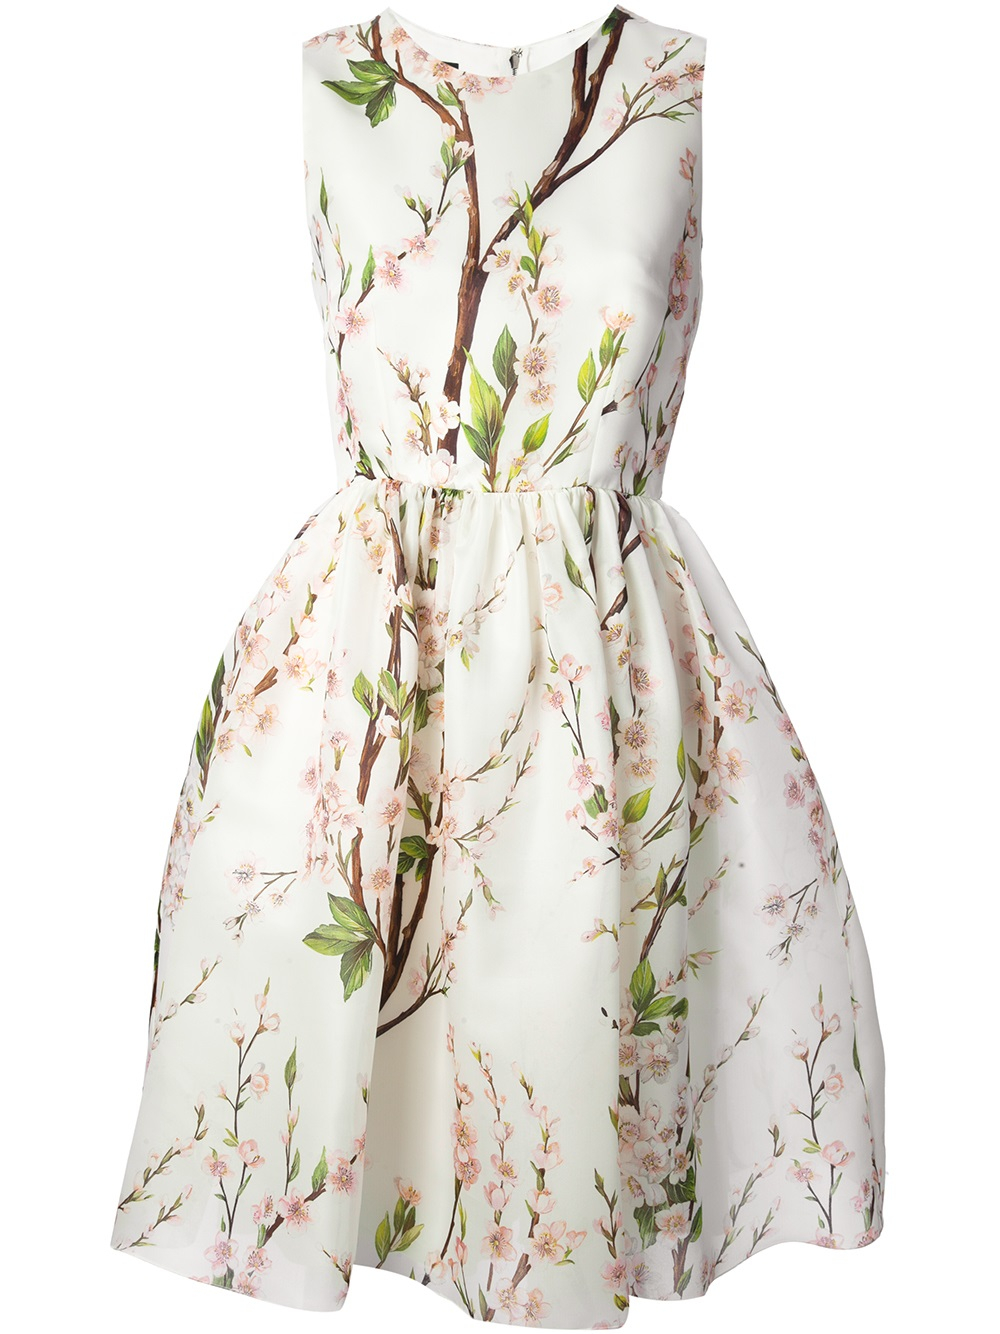 5dc6d3d2bce6 Gallery. Previously sold at  Farfetch · Women s Cocoon Dresses ...